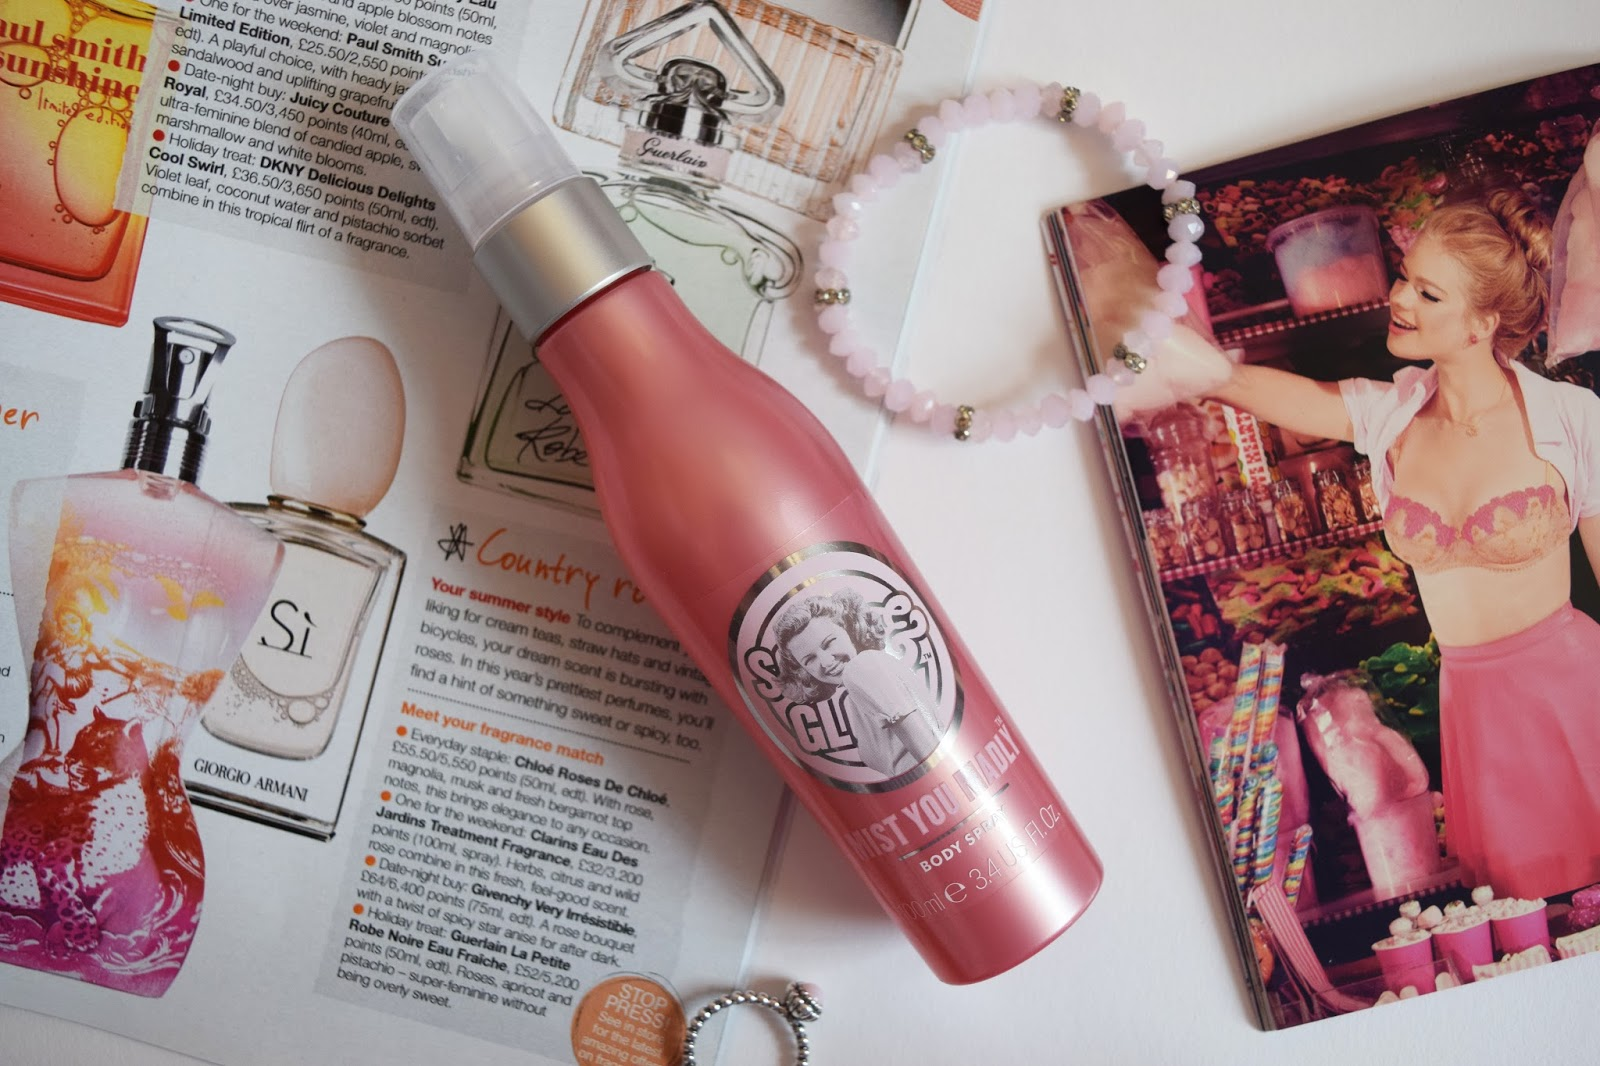 a pink bottle of mist you madly body spray